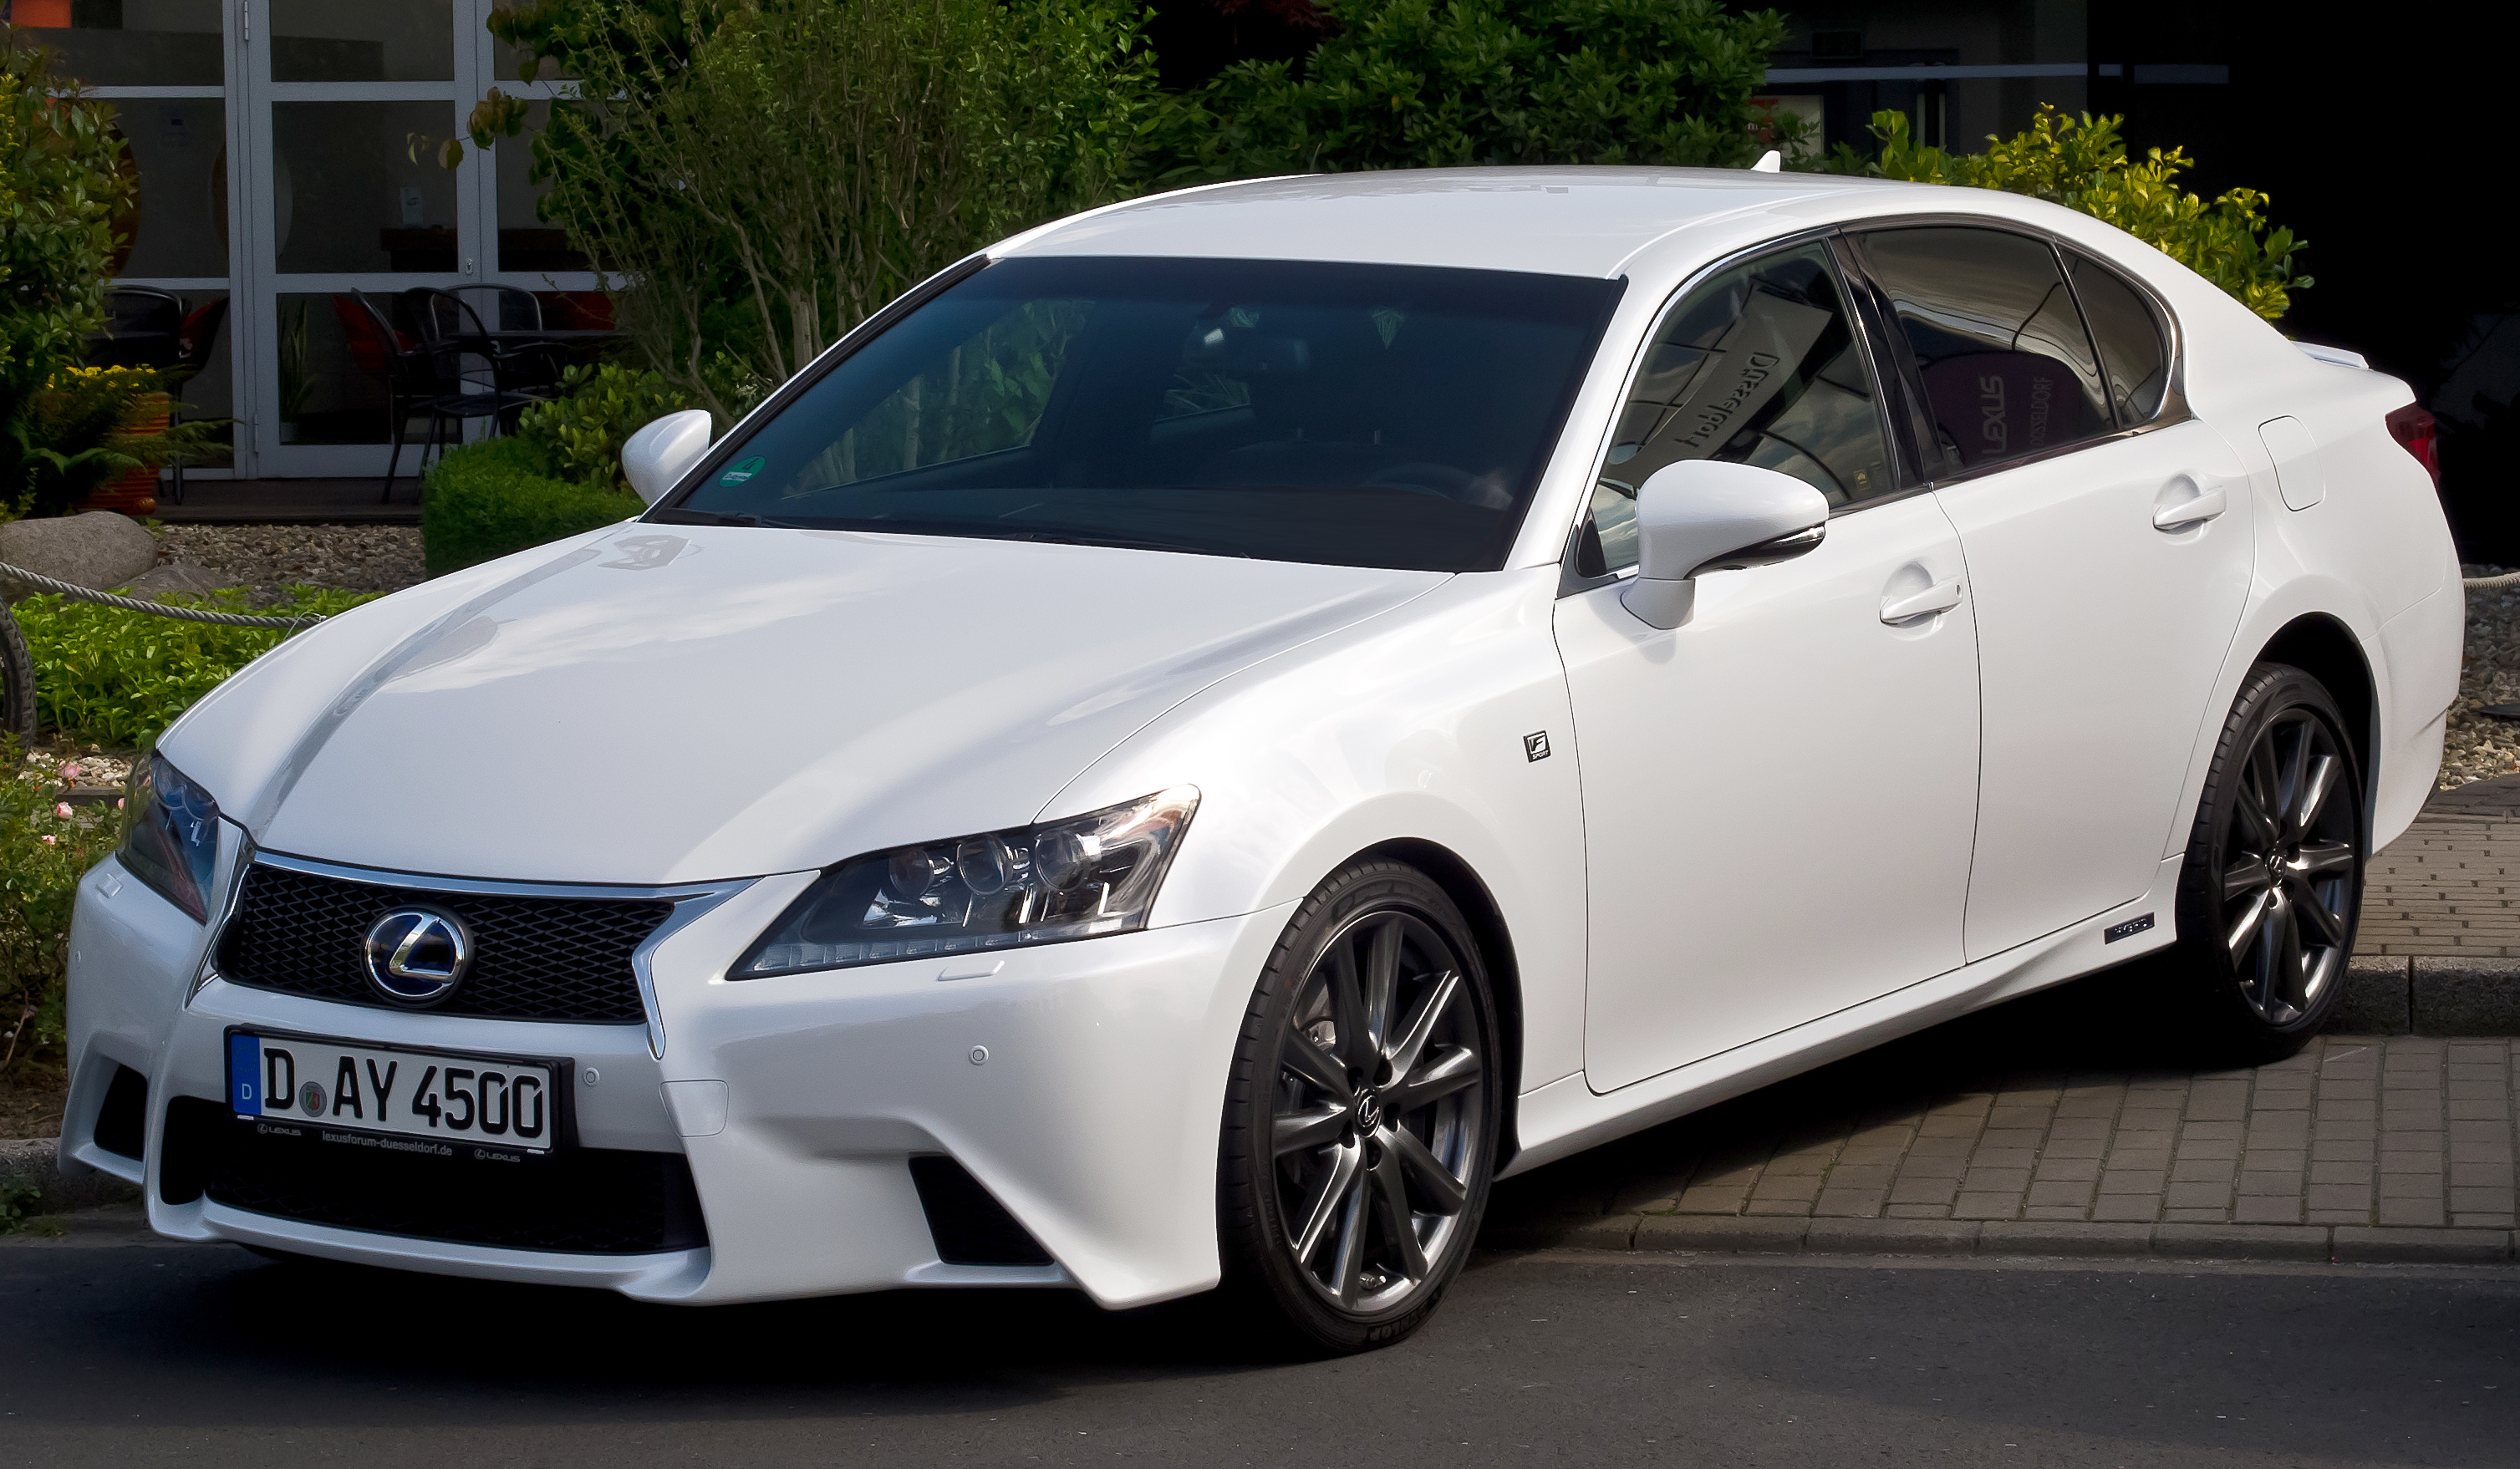 Description Lexus GS 450h F Sport – Frontansicht, 17. Juni 2012